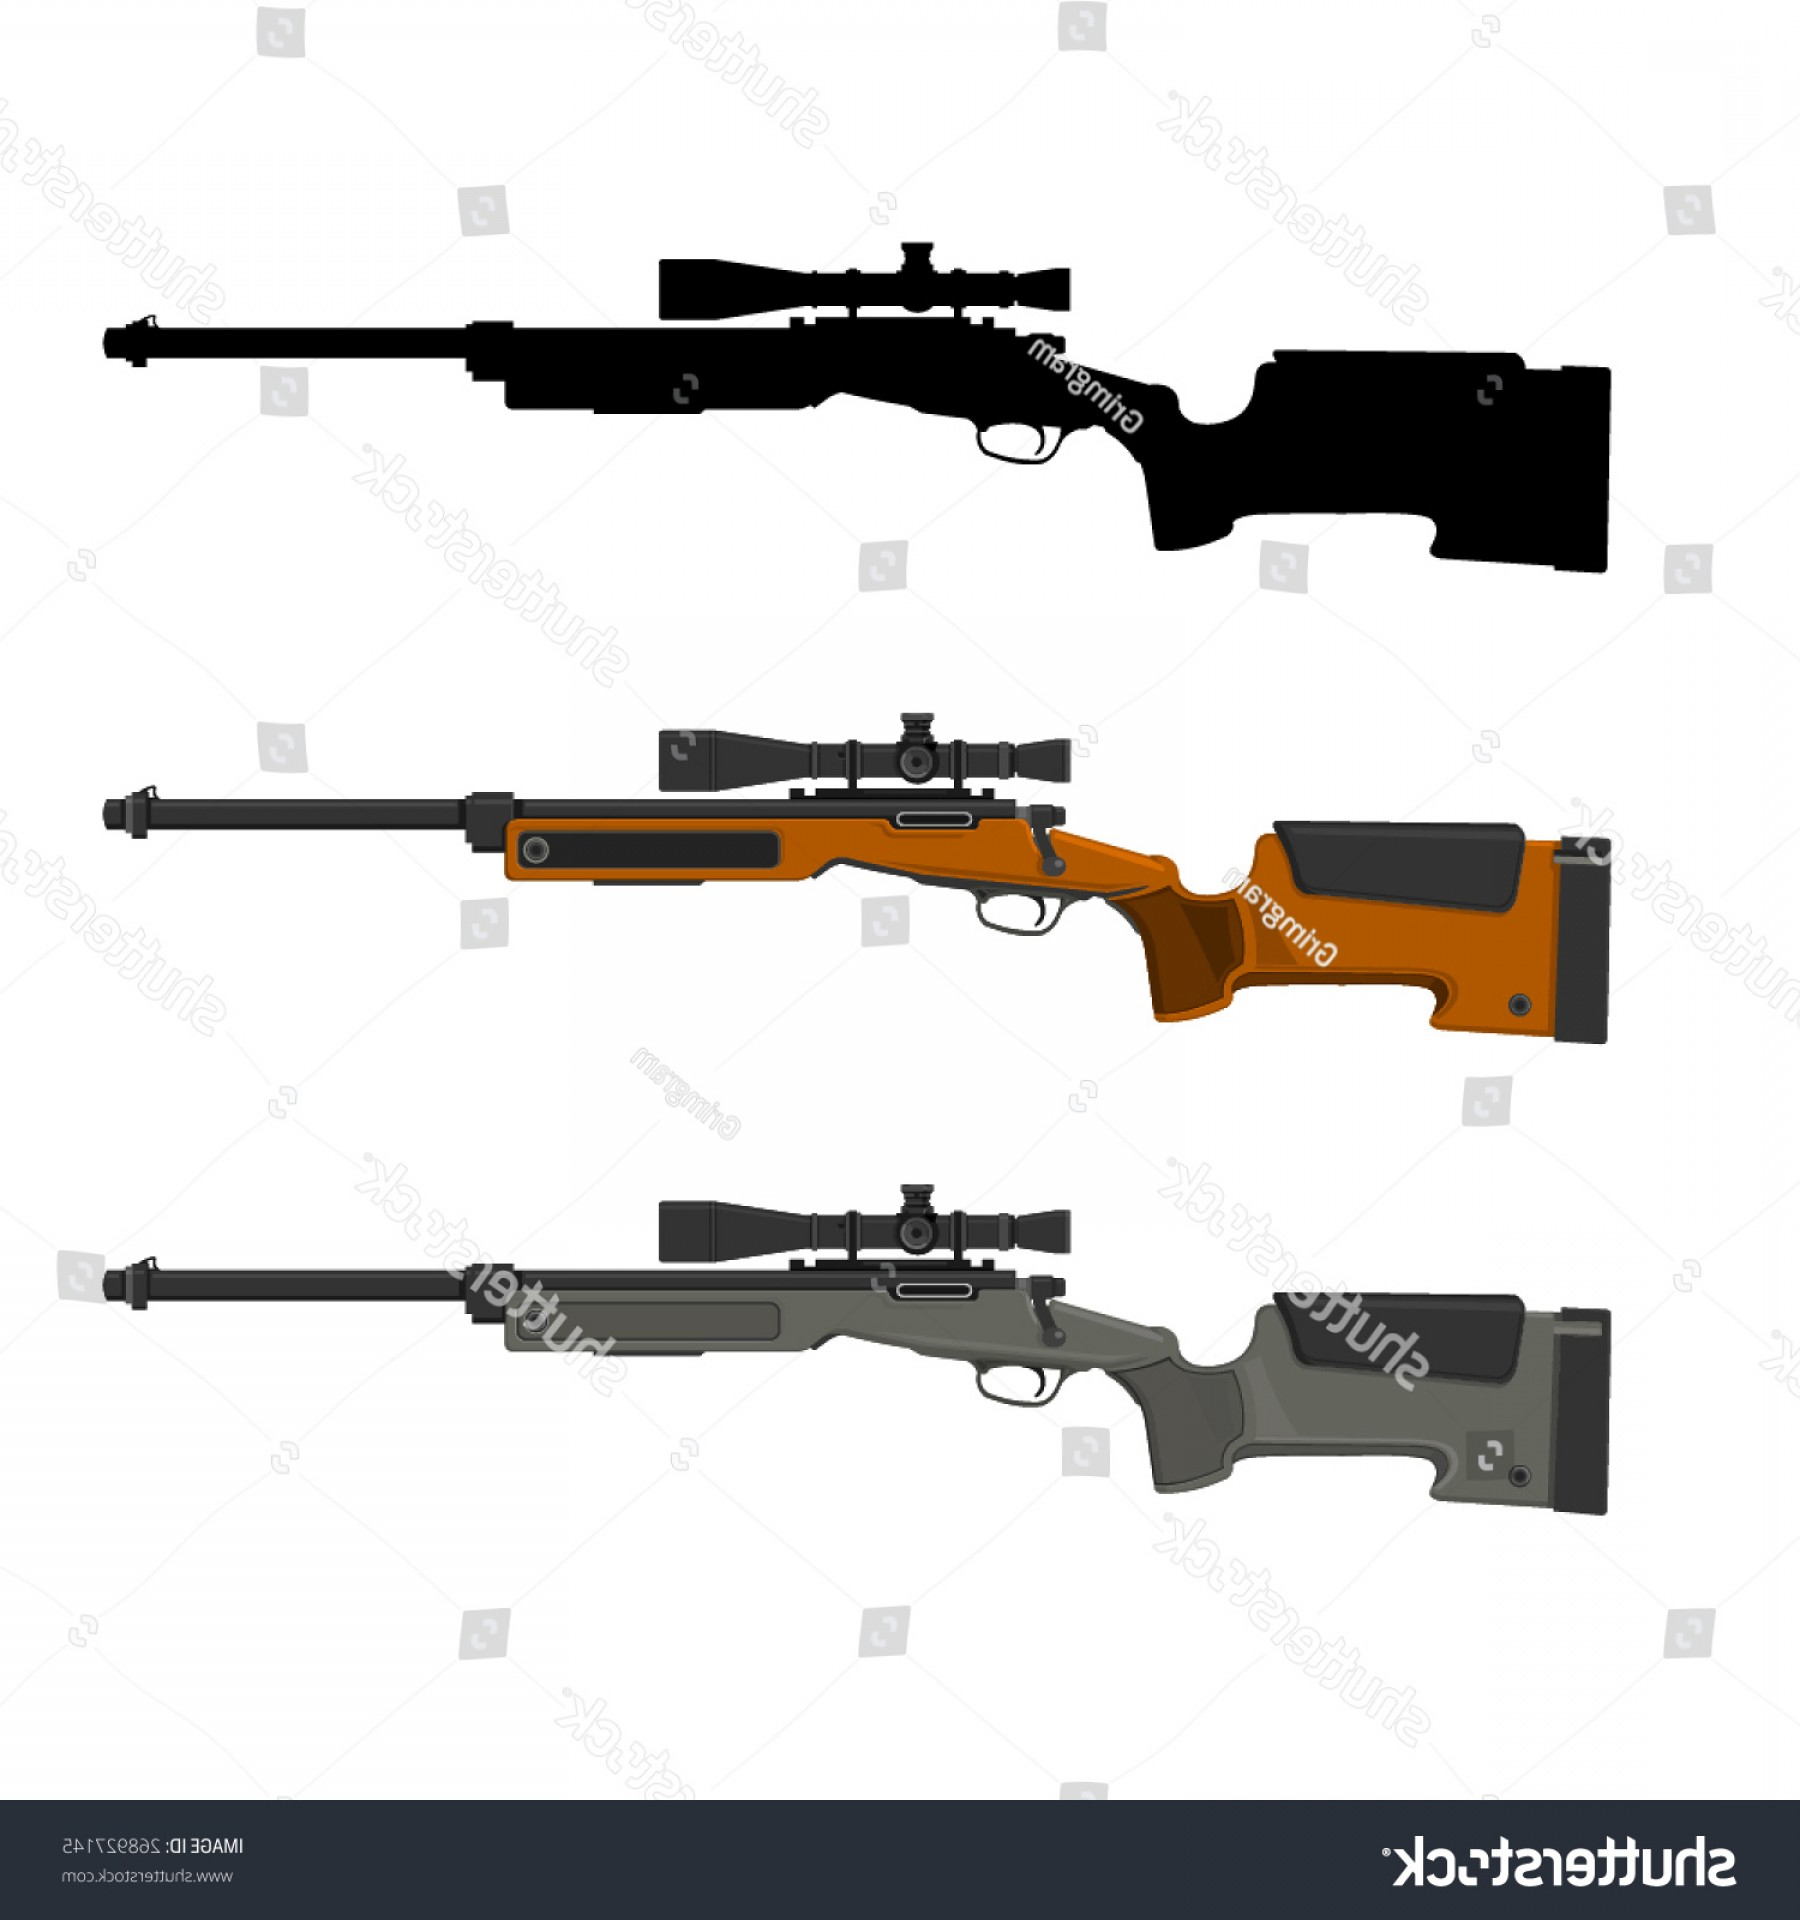 Hunting Rifle Vector Cross: Vector Illustration Sniper Rifle Telescopic Sight